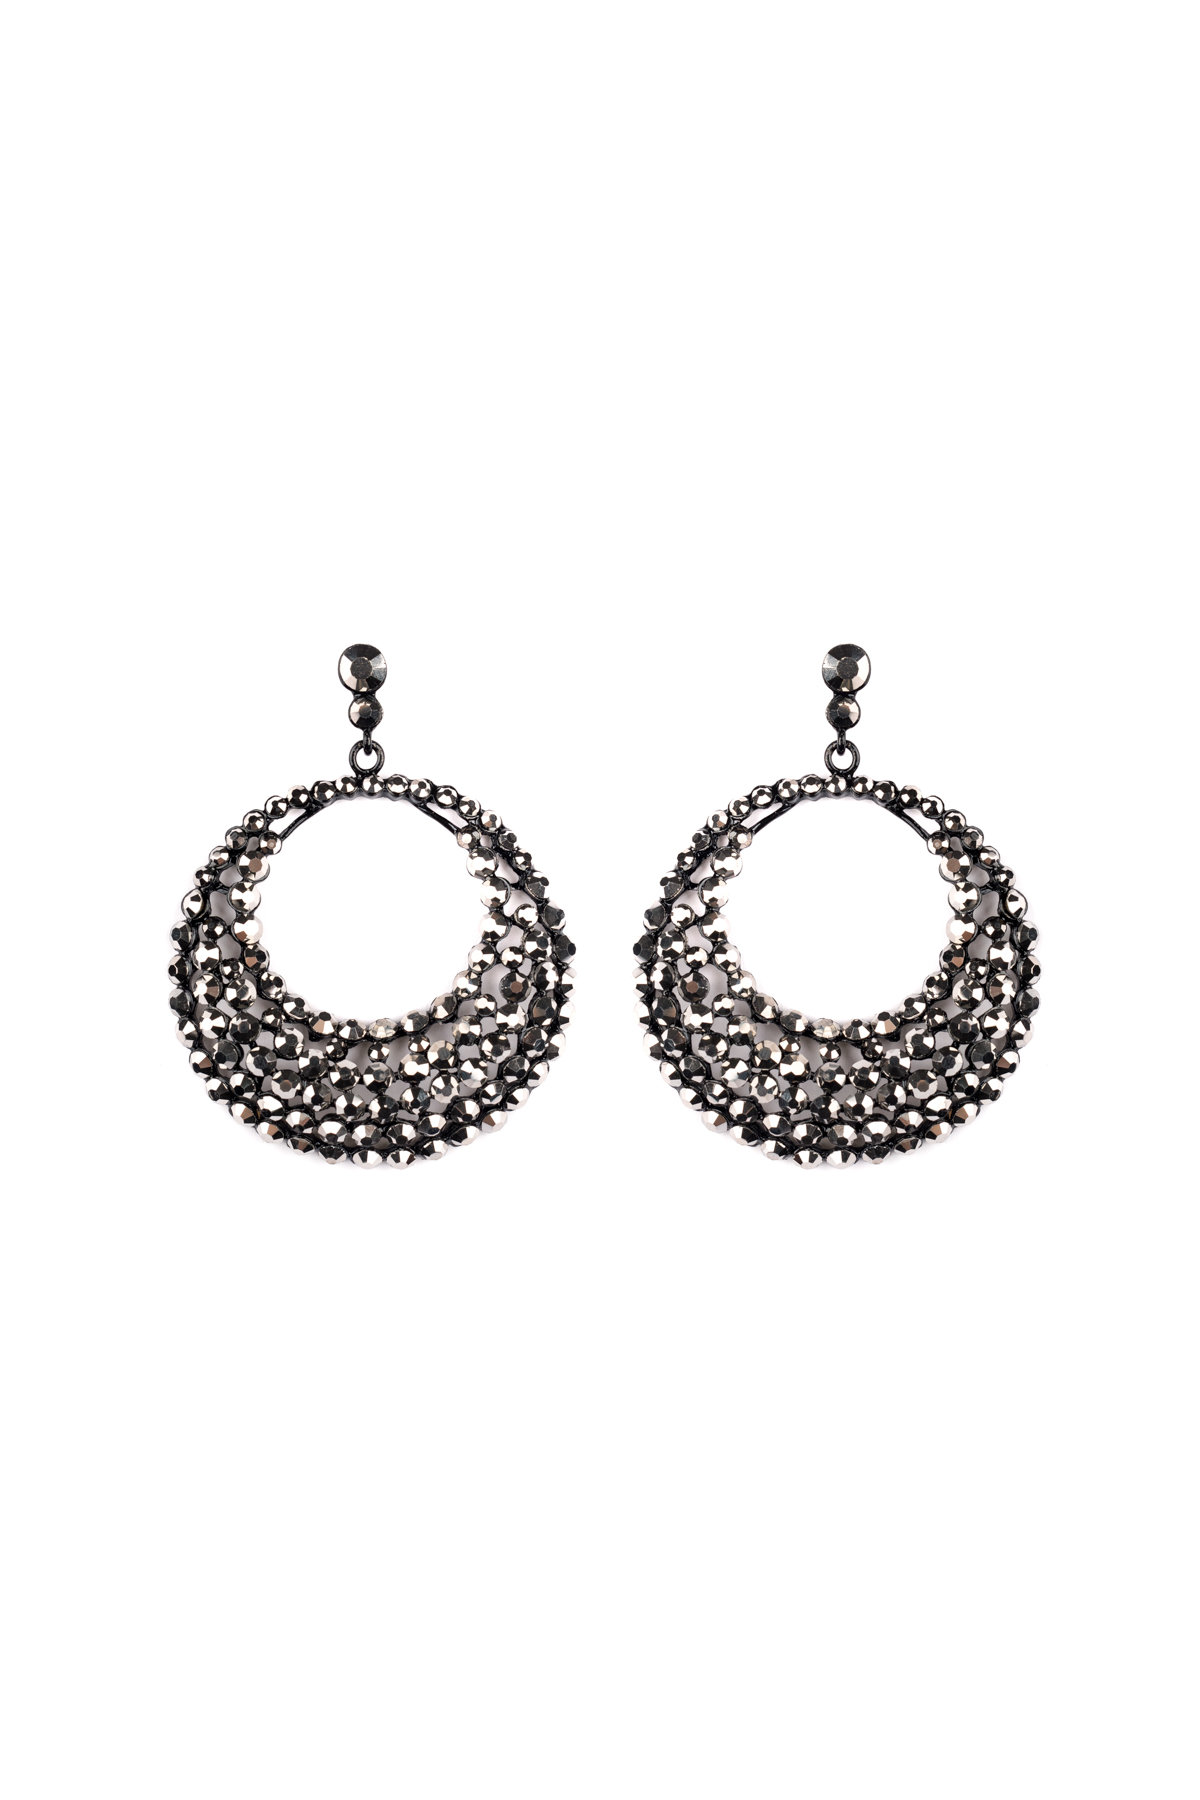 products noir glitzy jewelry earrings caviar gunmetal